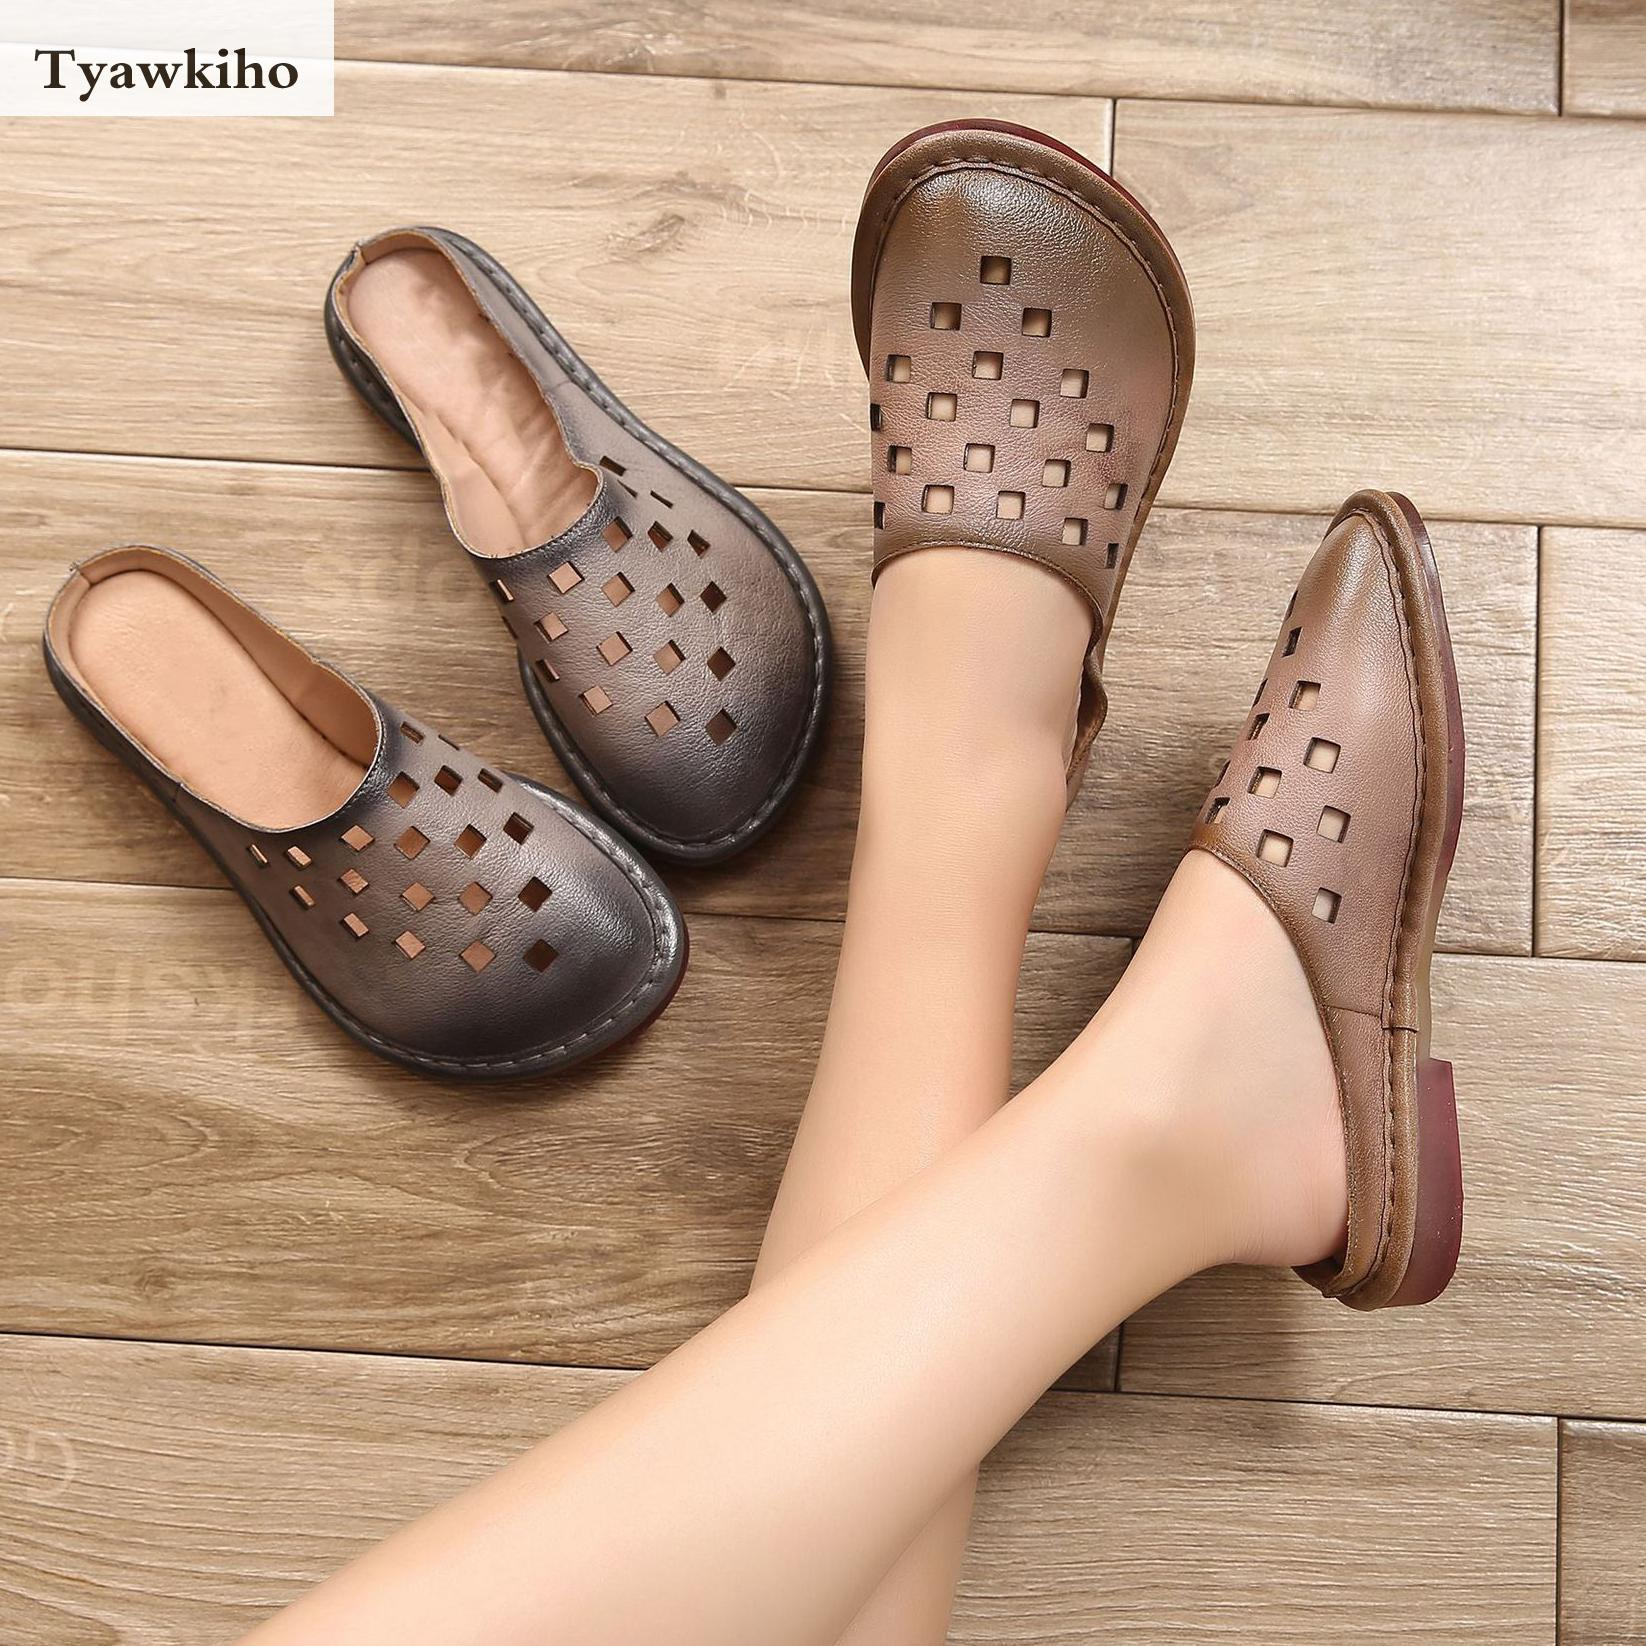 Tyawkiho Genuine Leather Women Mules Gray Summer Shoes Hollow Out Slippers Low Heel Sandals Women Soft Leather Slipper Handmade tyawkiho genuine leather women sandals 7 cm high heel pointed toe summer shoes hollow out retro sandals handmade women shoe 2018